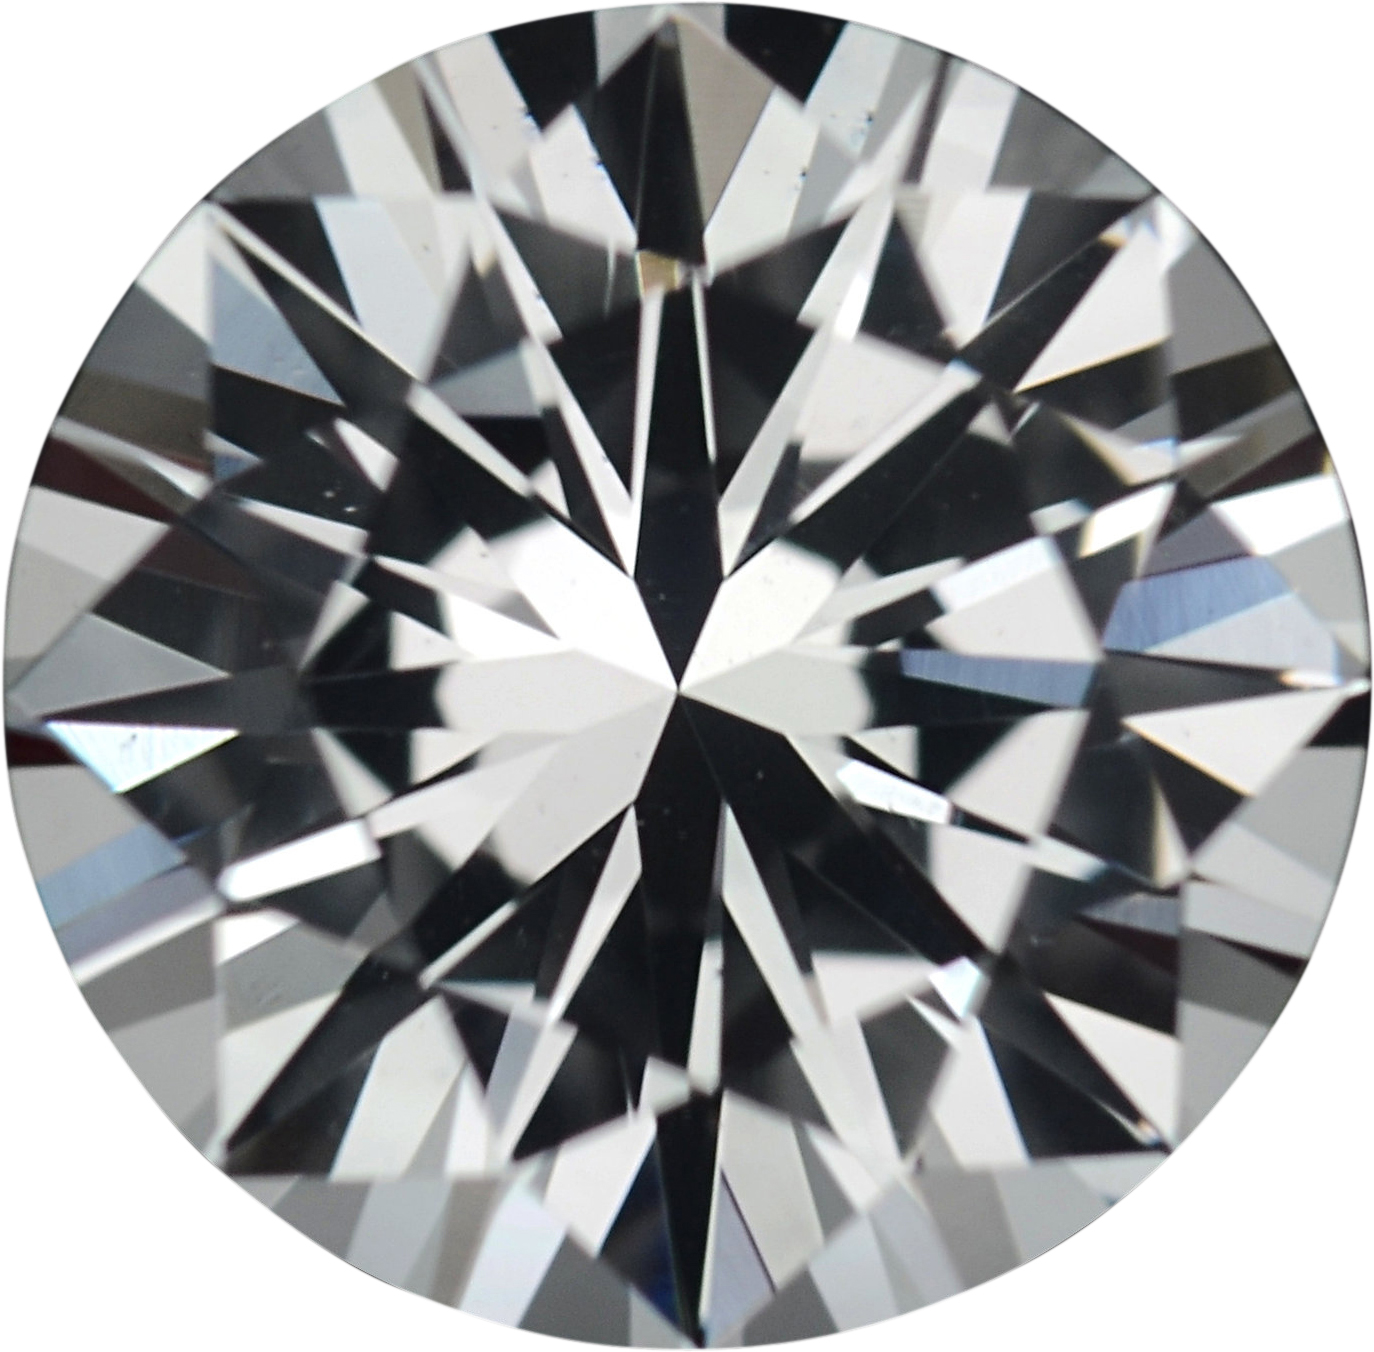 1.42 carats White Loose Sapphire Gemstone in Round Cut, 6.92 mm